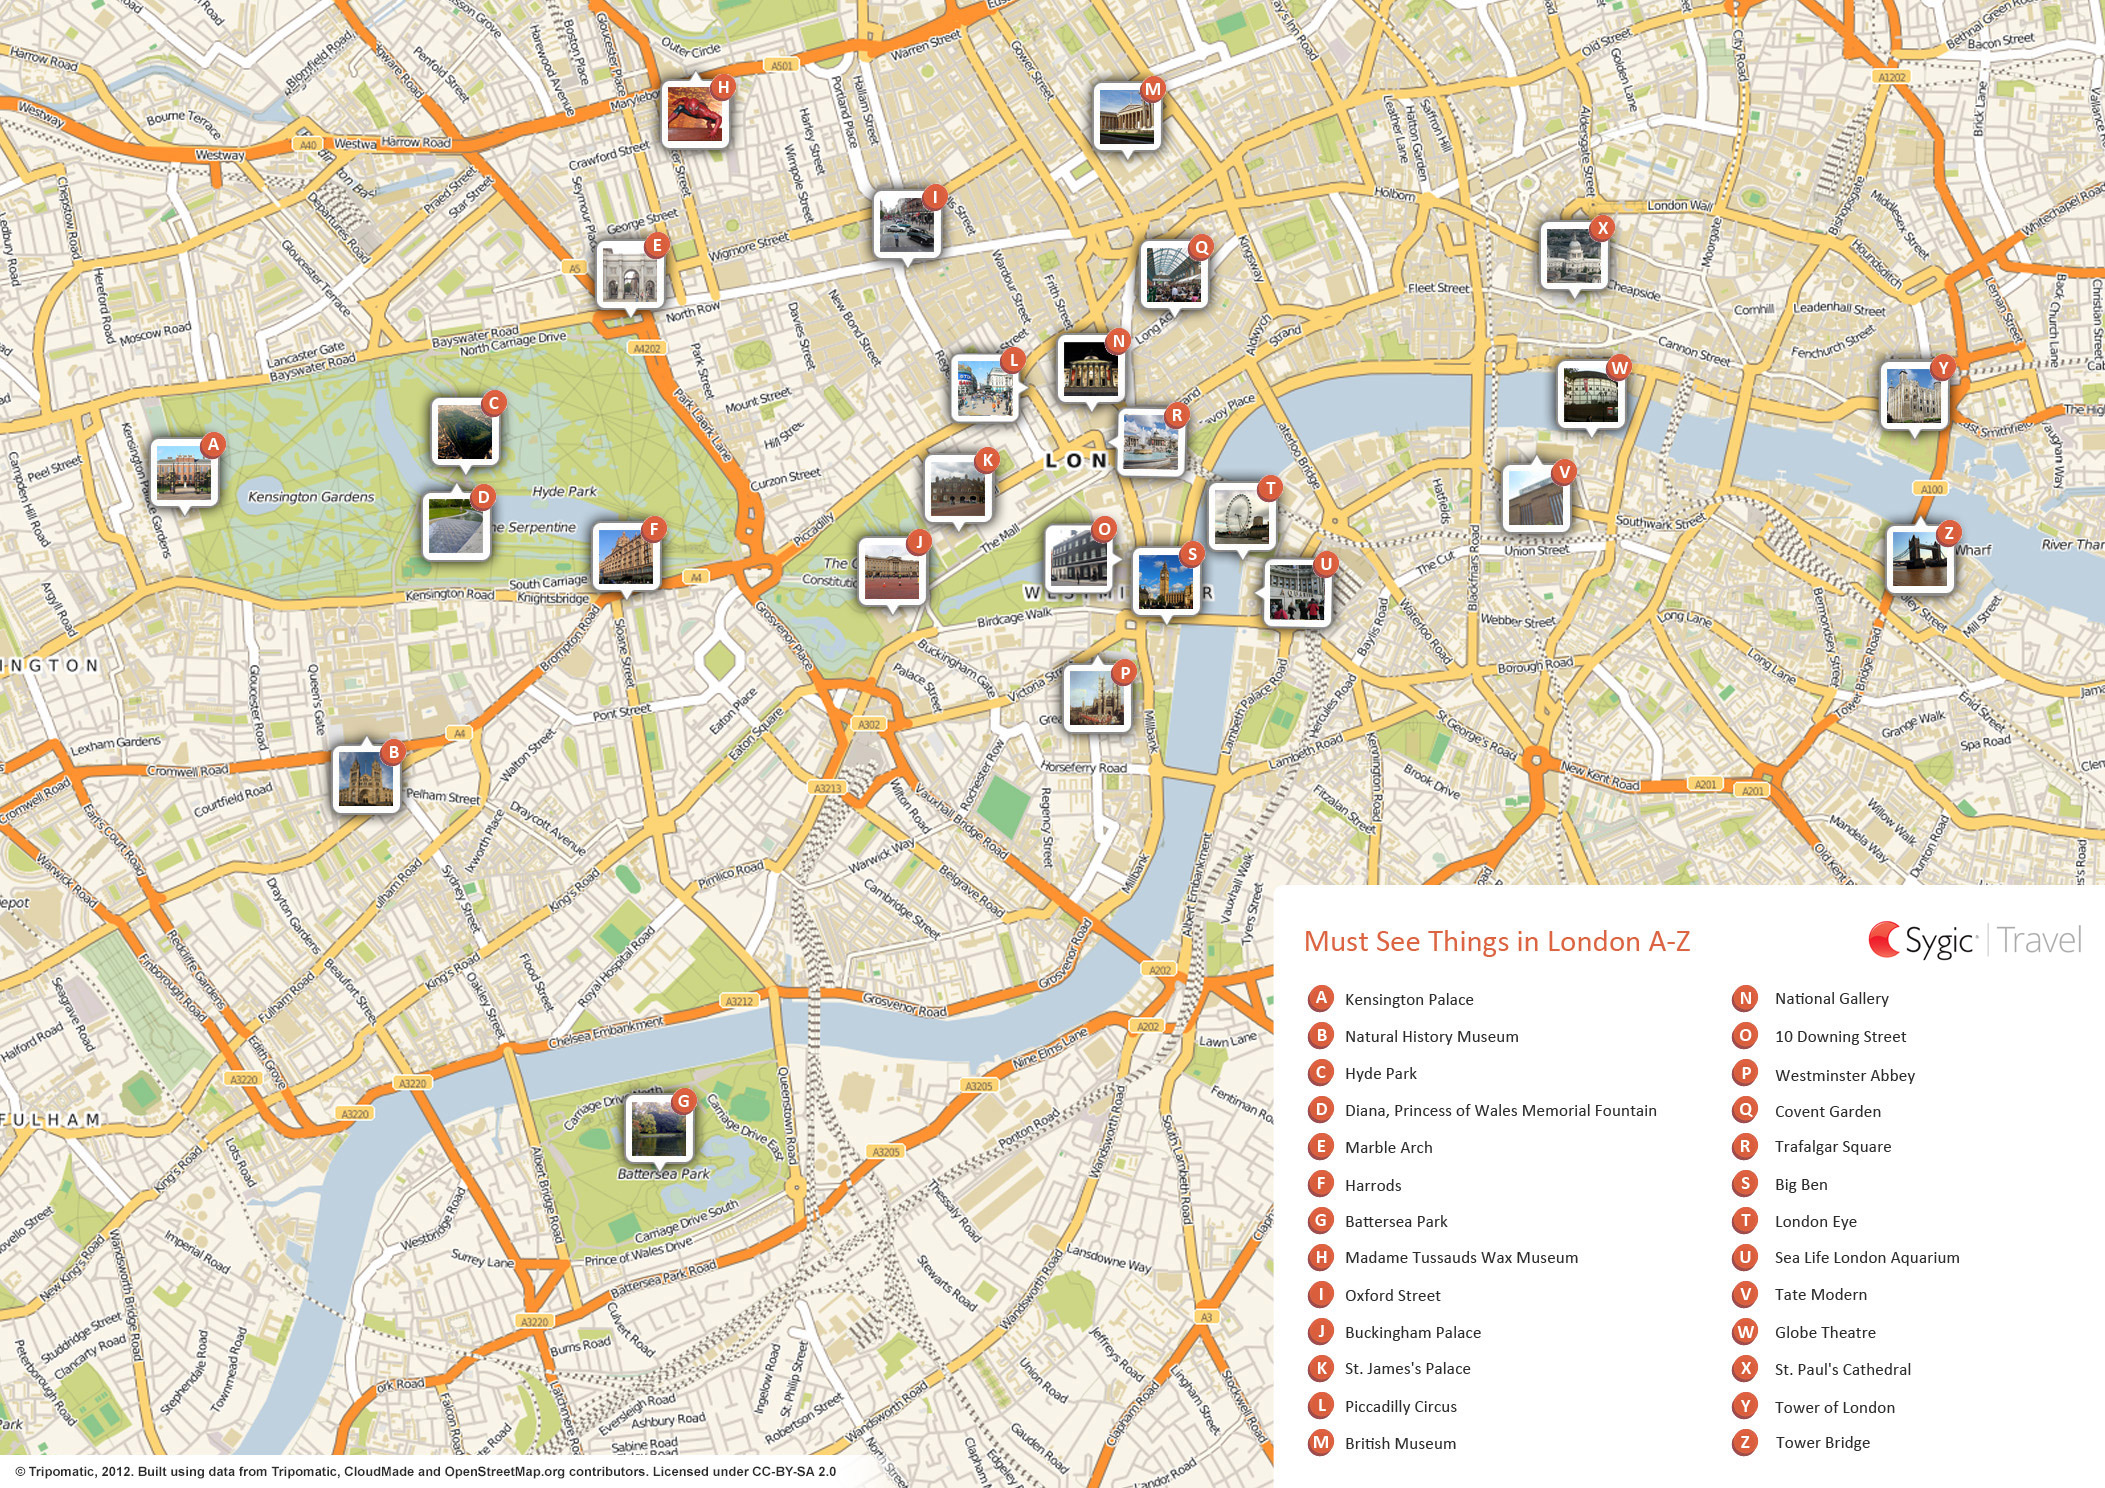 London Map Attractions.London Printable Tourist Map Sygic Travel